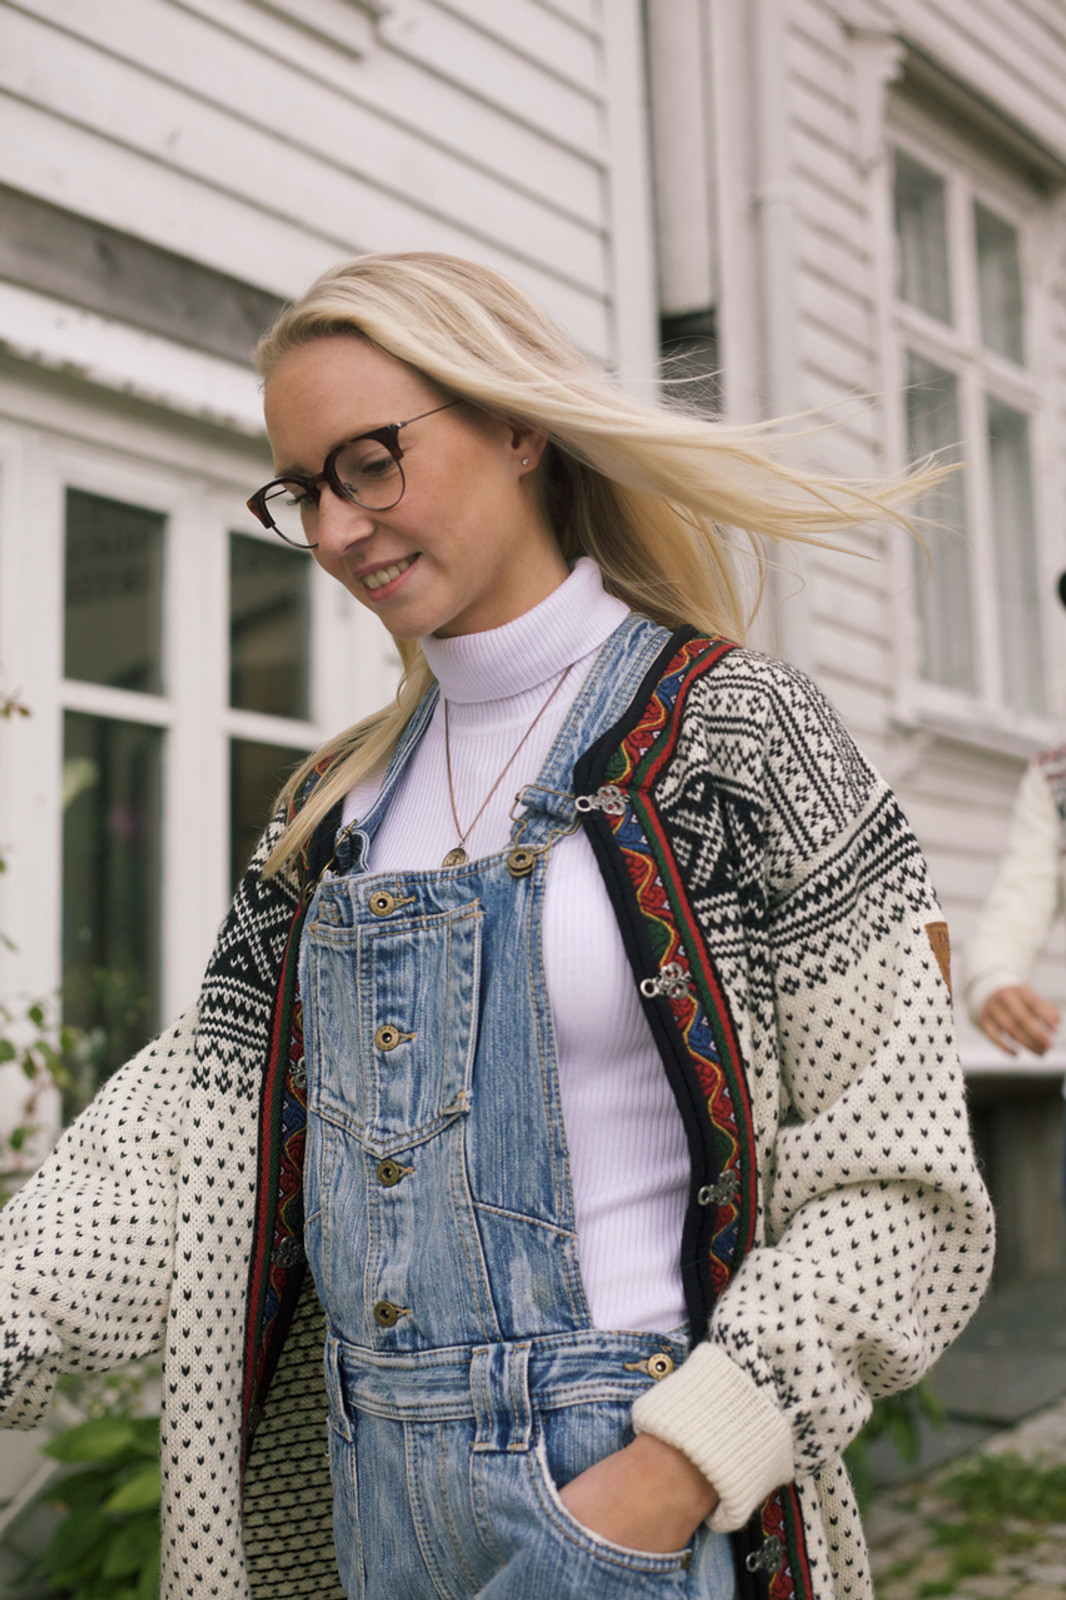 Girl walking wearing Dale of Norway's new unisex Setesdal cardigan in Off White/Black, 83291-A